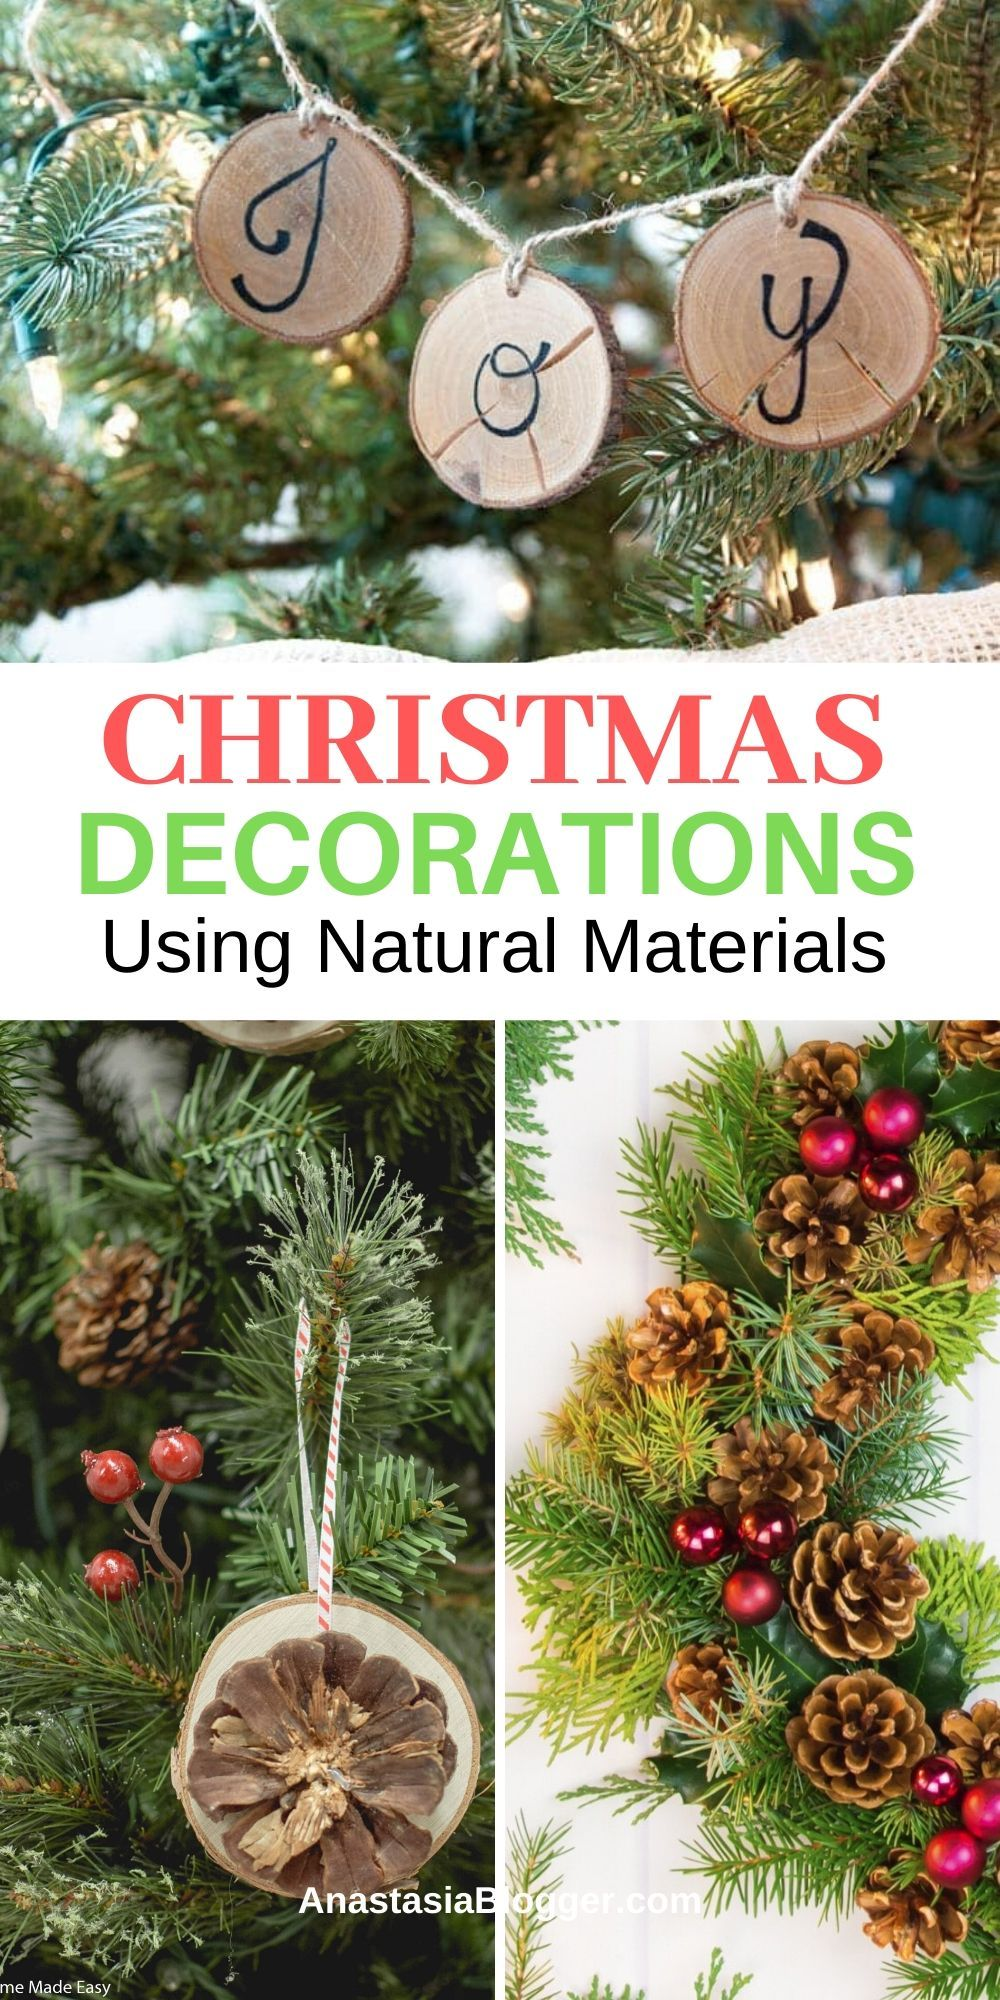 15 Best Christmas Decorations Made From Natural Materials Diy Ideas Fun Christmas Decorations Christmas Decorations Christmas Tree Decorations